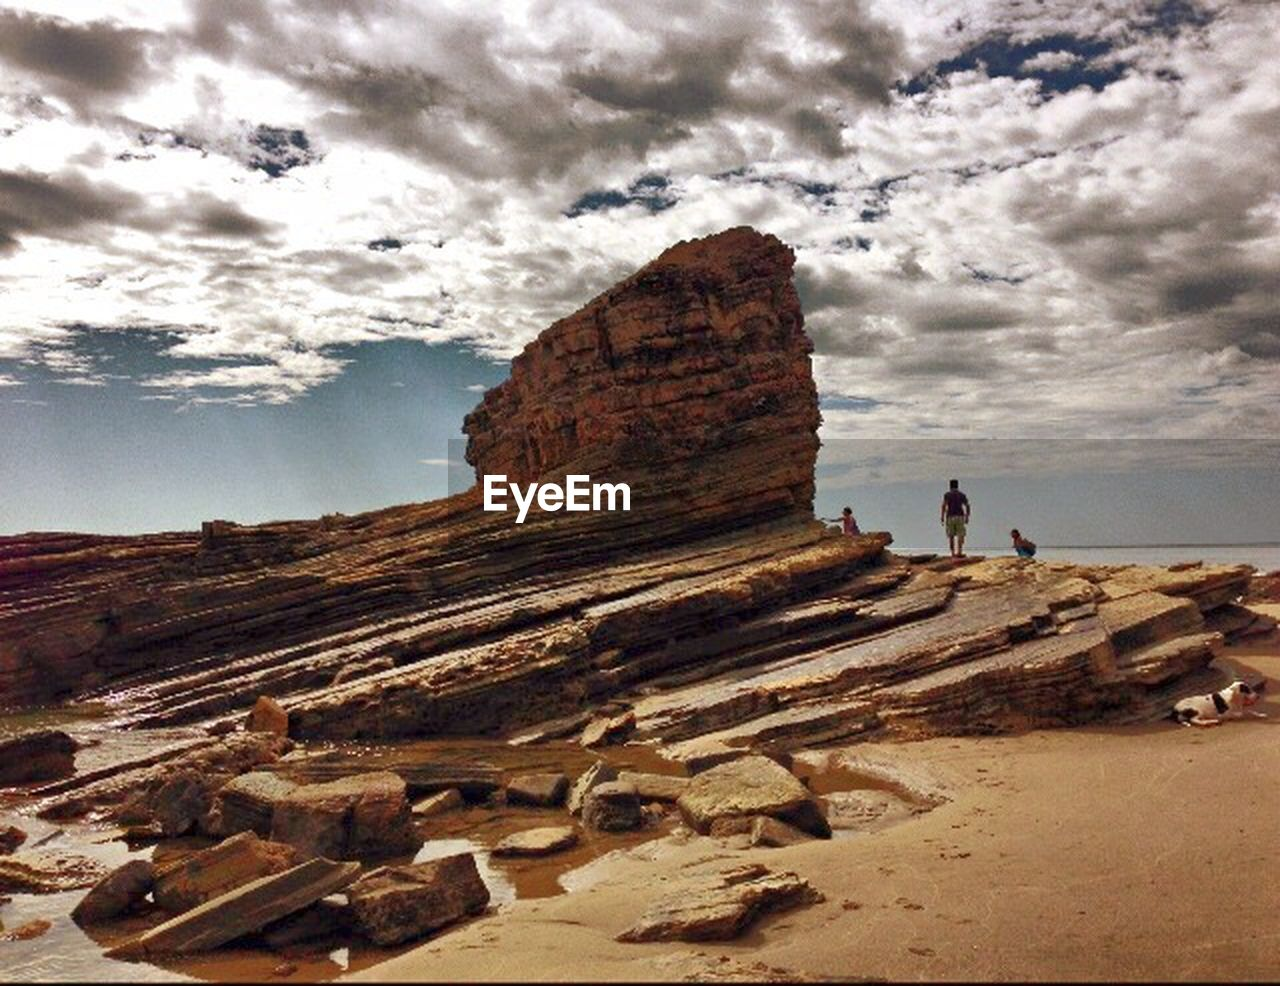 rock formation, rock - object, sky, nature, cloud - sky, real people, cliff, landscape, beauty in nature, day, physical geography, scenics, outdoors, women, one person, people